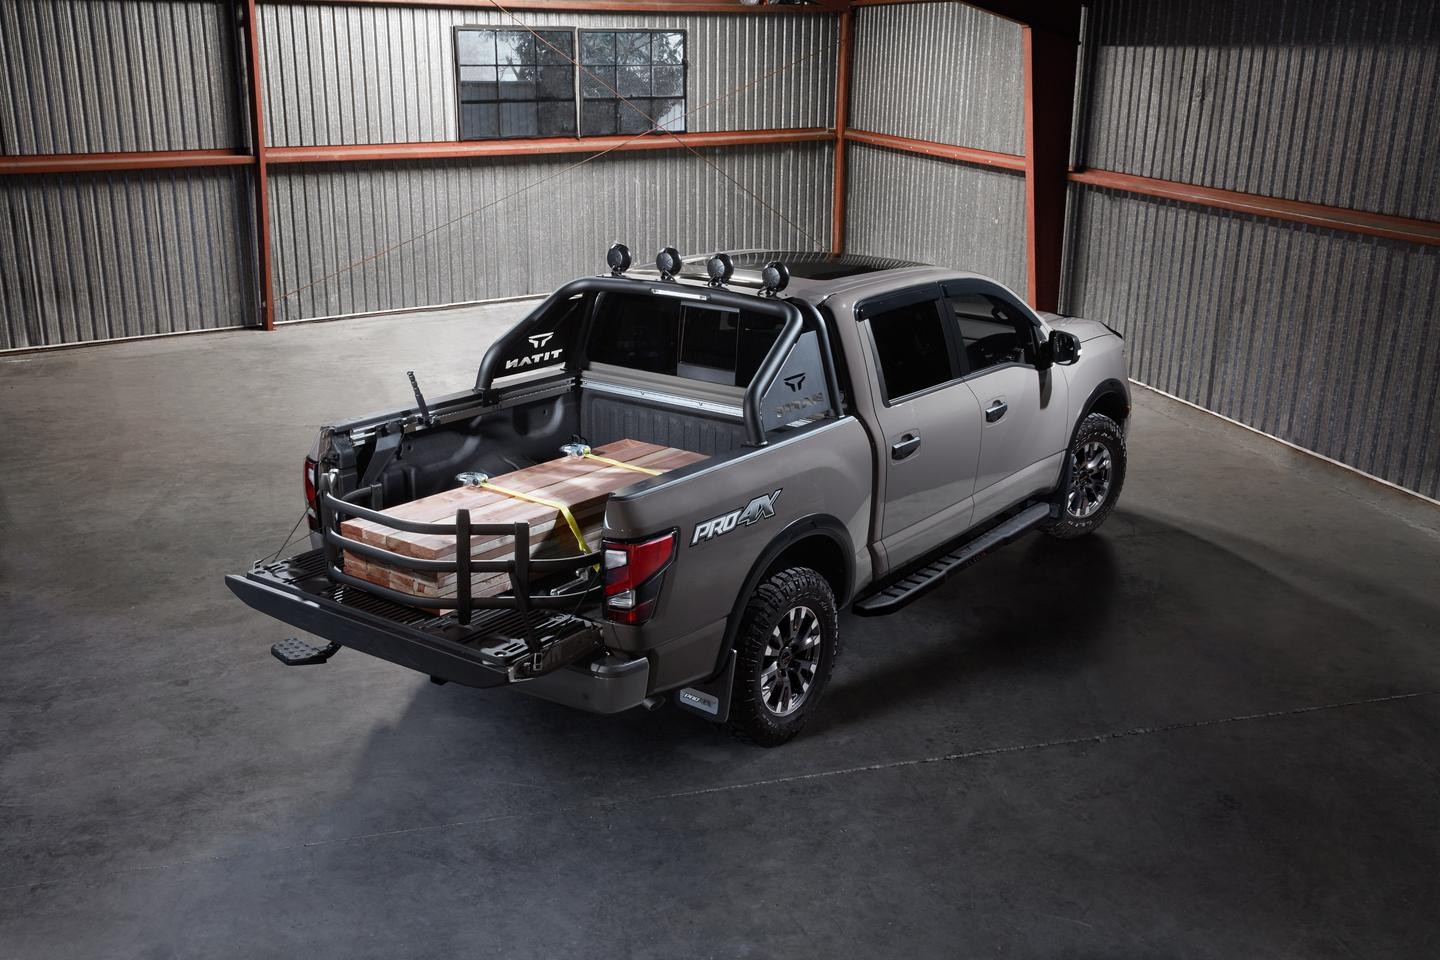 This fully-outfitted Nissan Titan shows what is available for customers at point of sale as add-ons for the pickup truck